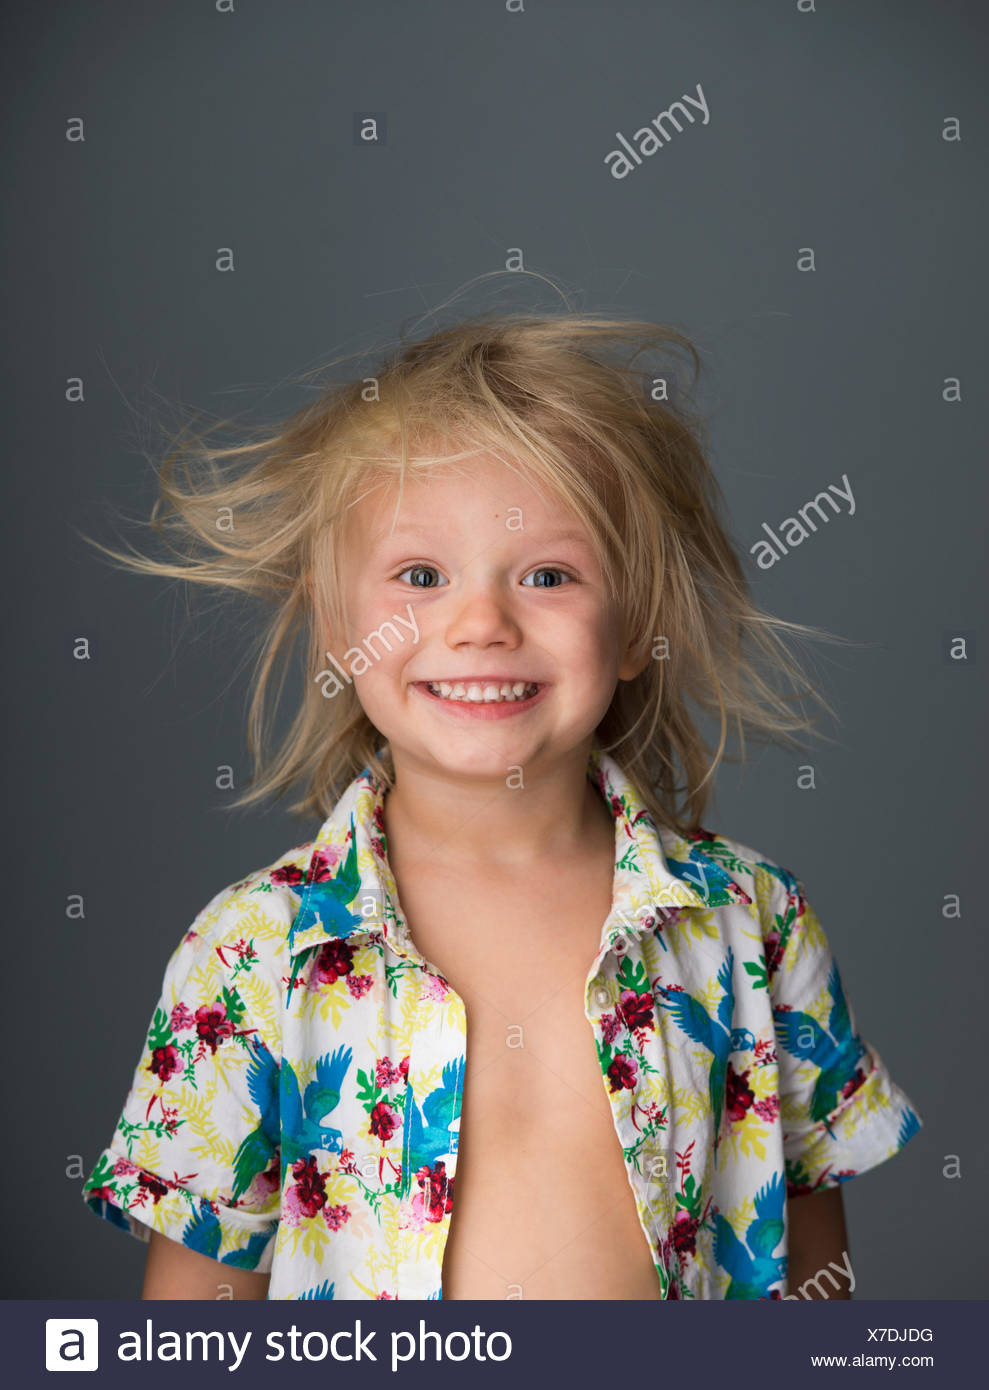 Portrait of young boy with messy hair, smiling - Stock Image